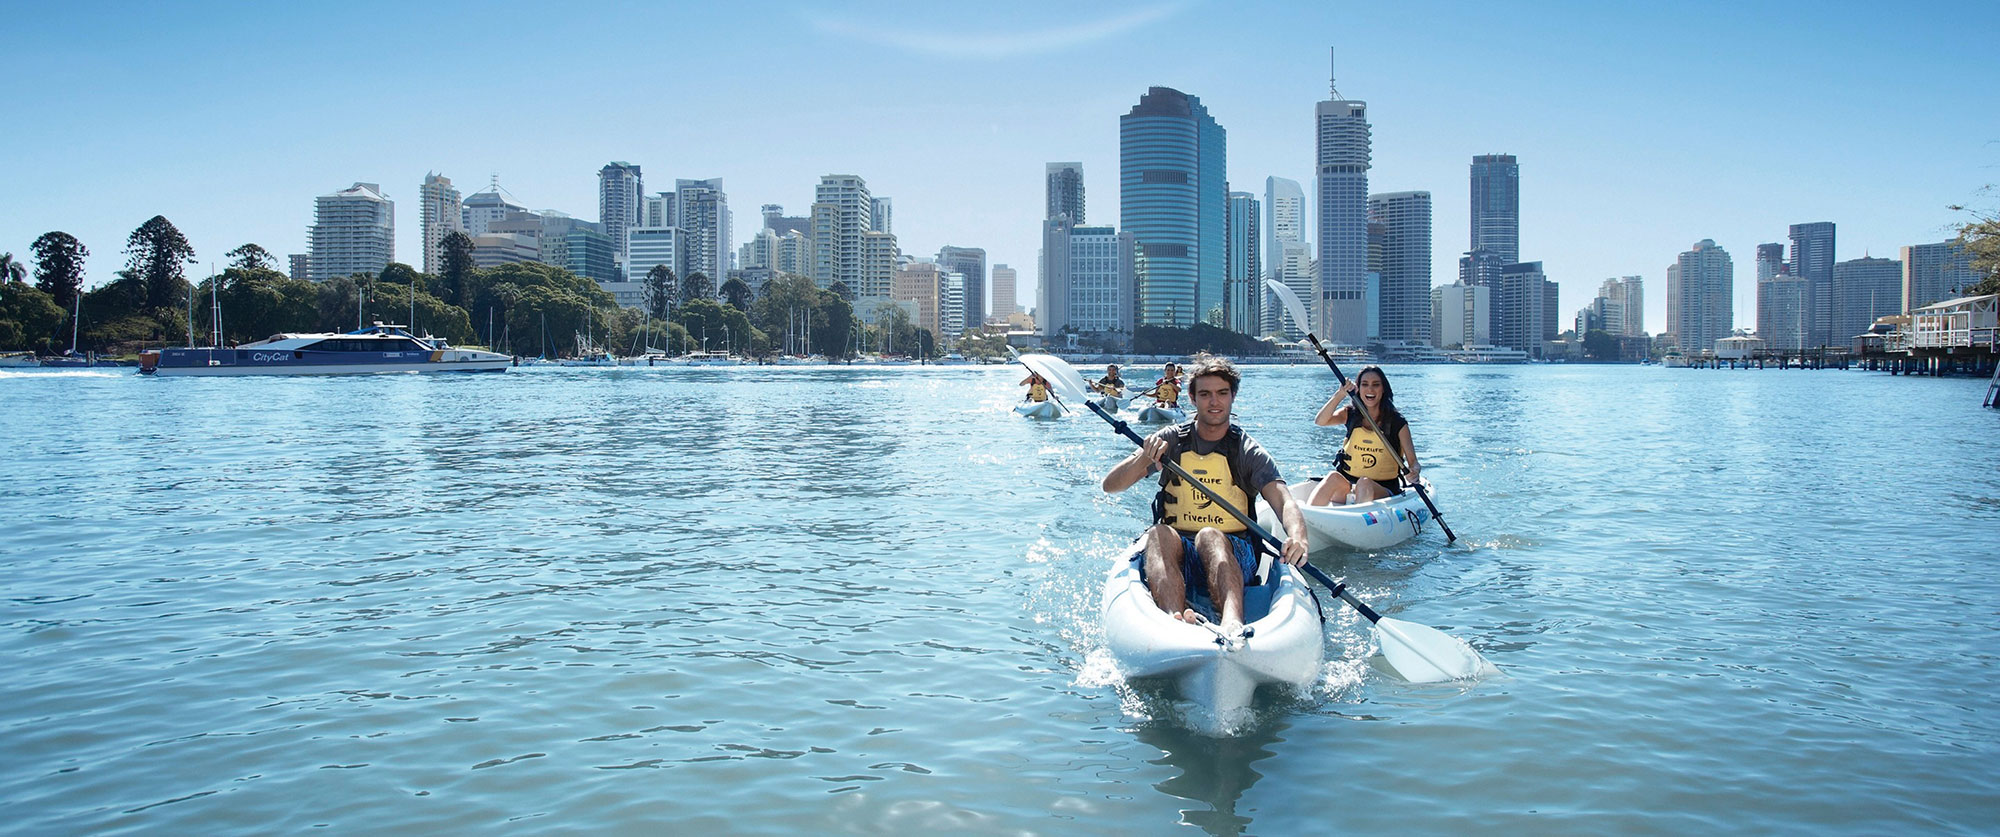 Best Travel Agency - Riverlife in Brisbane Australia